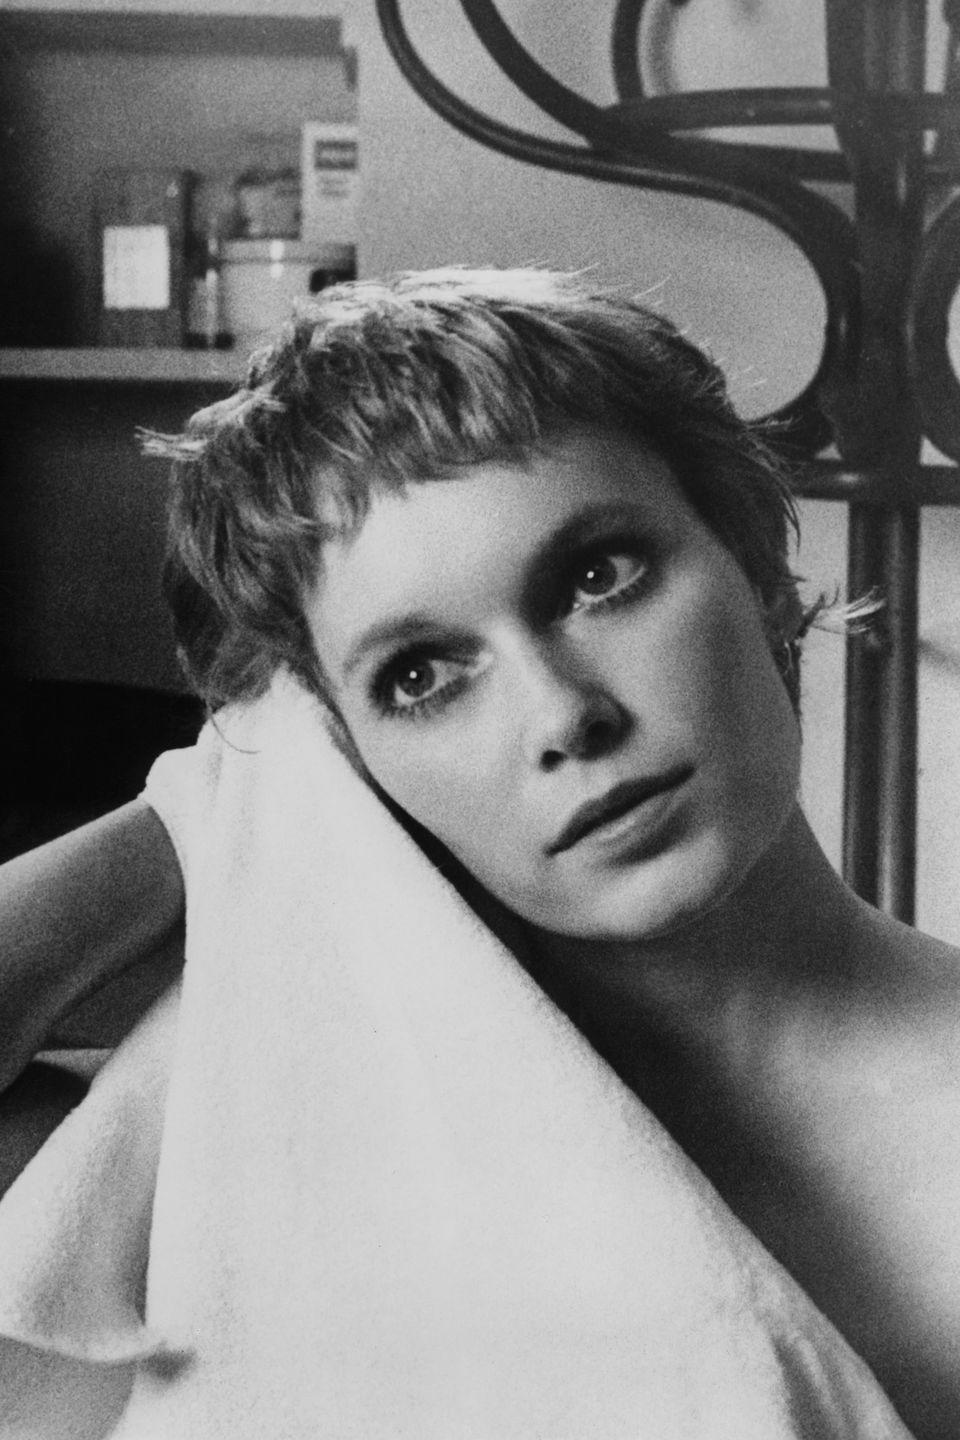 <p>Farrow dries off in a scene for <em>John and Mary</em>. Farrow costarred in the romantic drama with Dustin Hoffman, and it was directed by Peter Yates.</p>